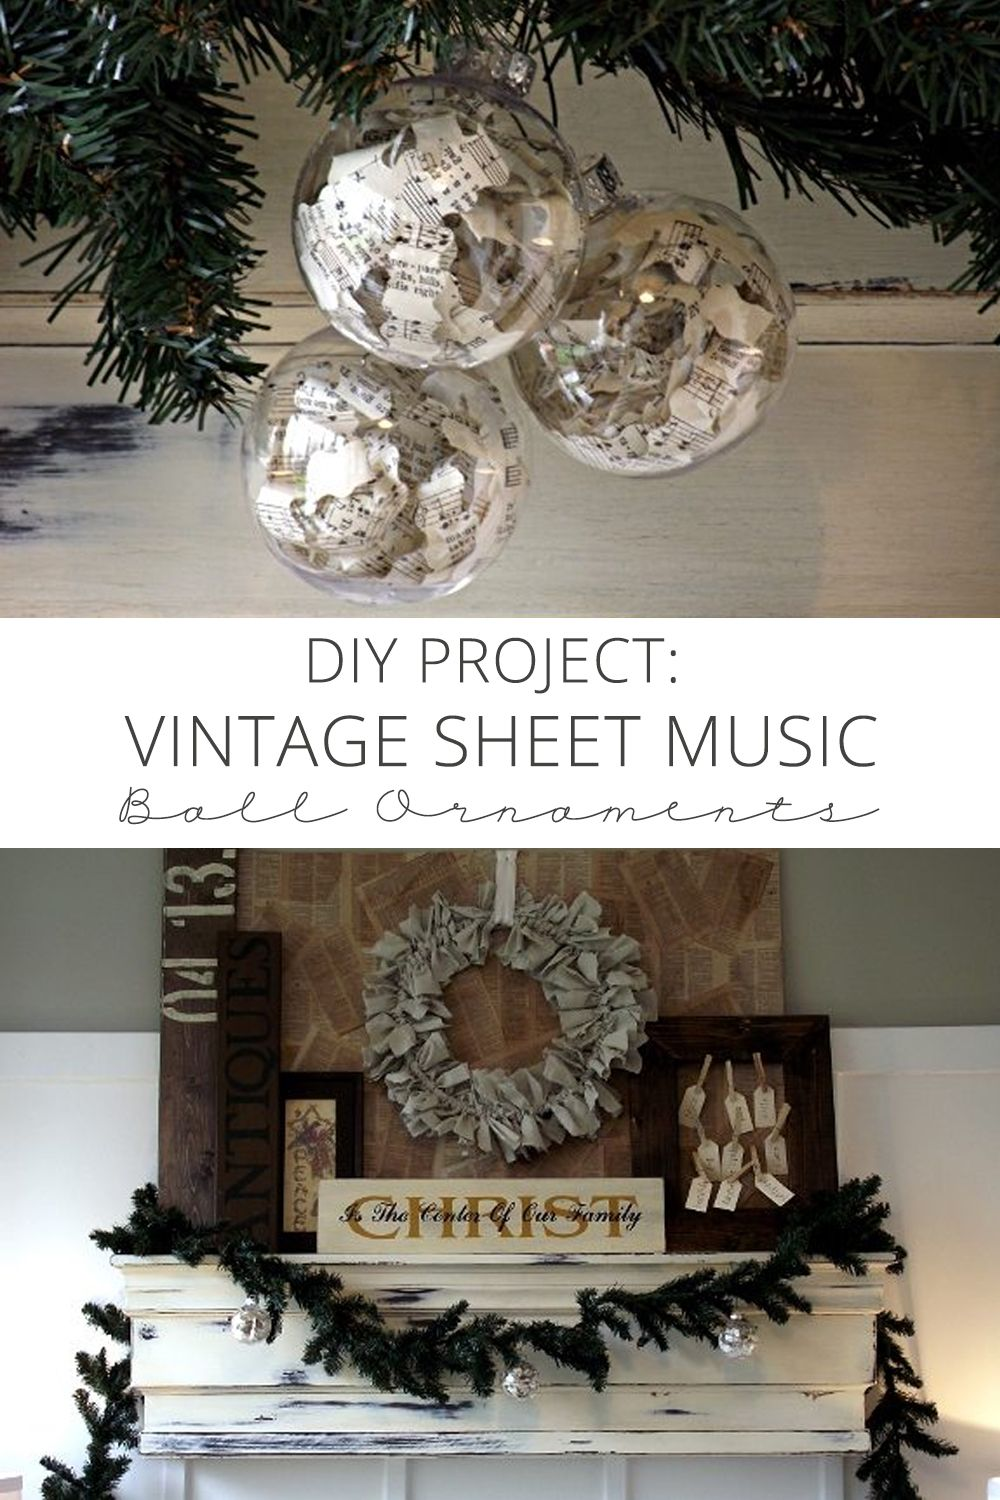 Diy Project Vintage Sheet Music Ball Ornaments Via Homemadelovely Sheet Music Ornaments Diy Projects Vintage Vintage Sheet Music